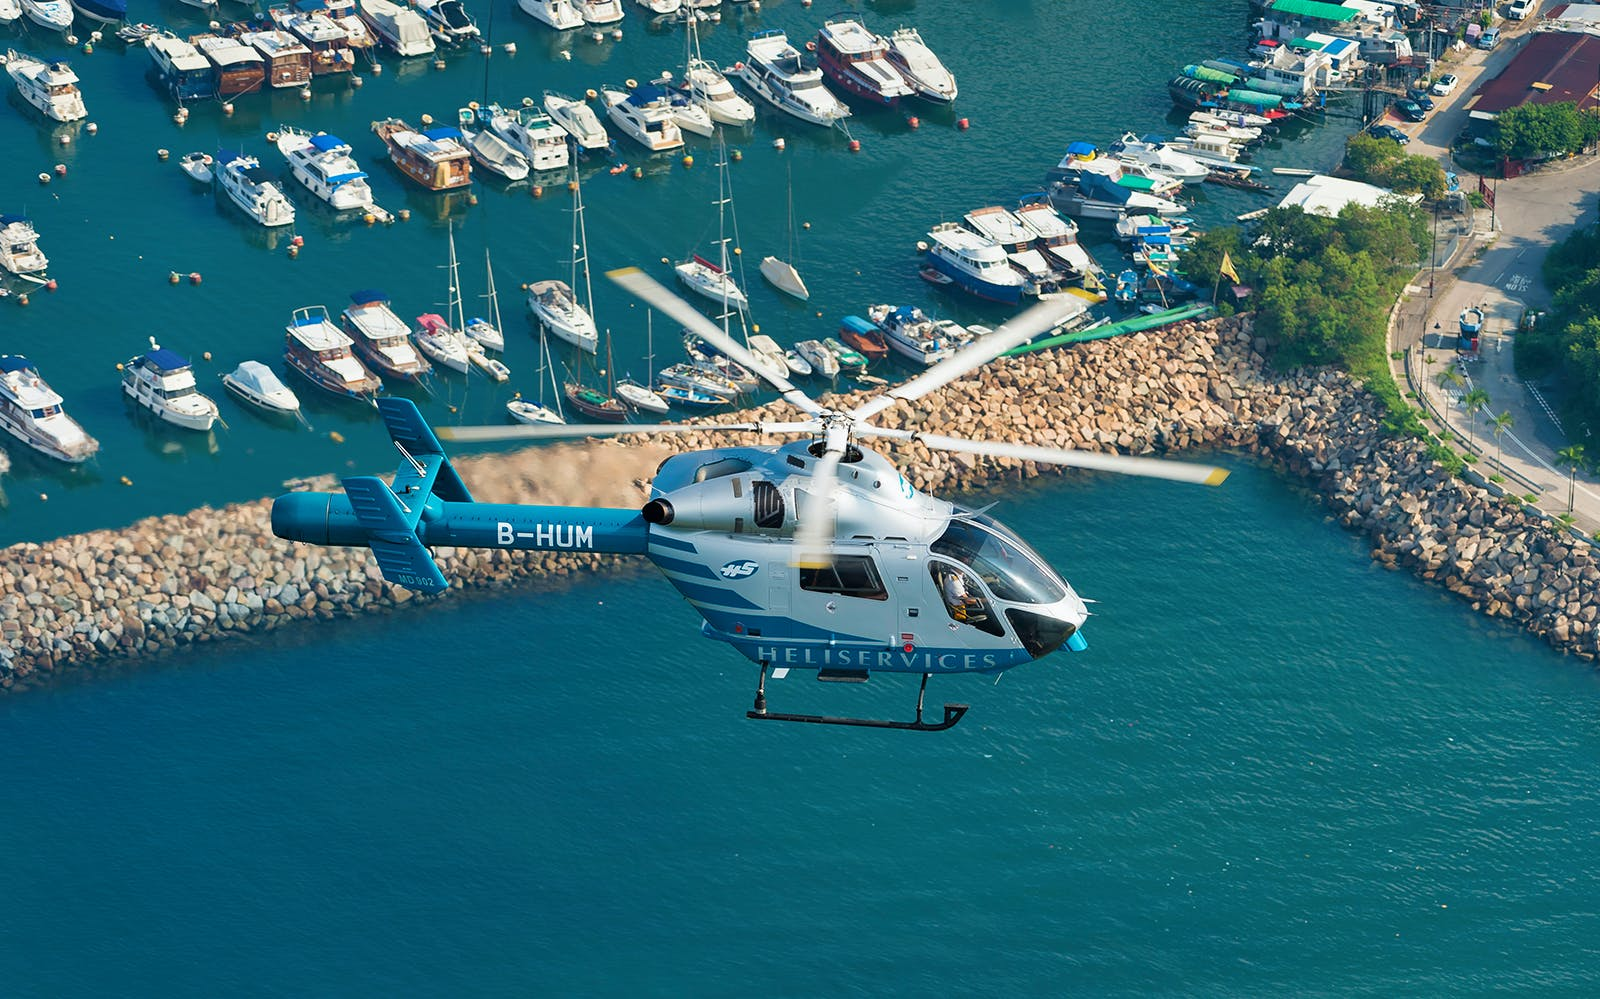 Hong Kong Helicopter Tours - 15 min